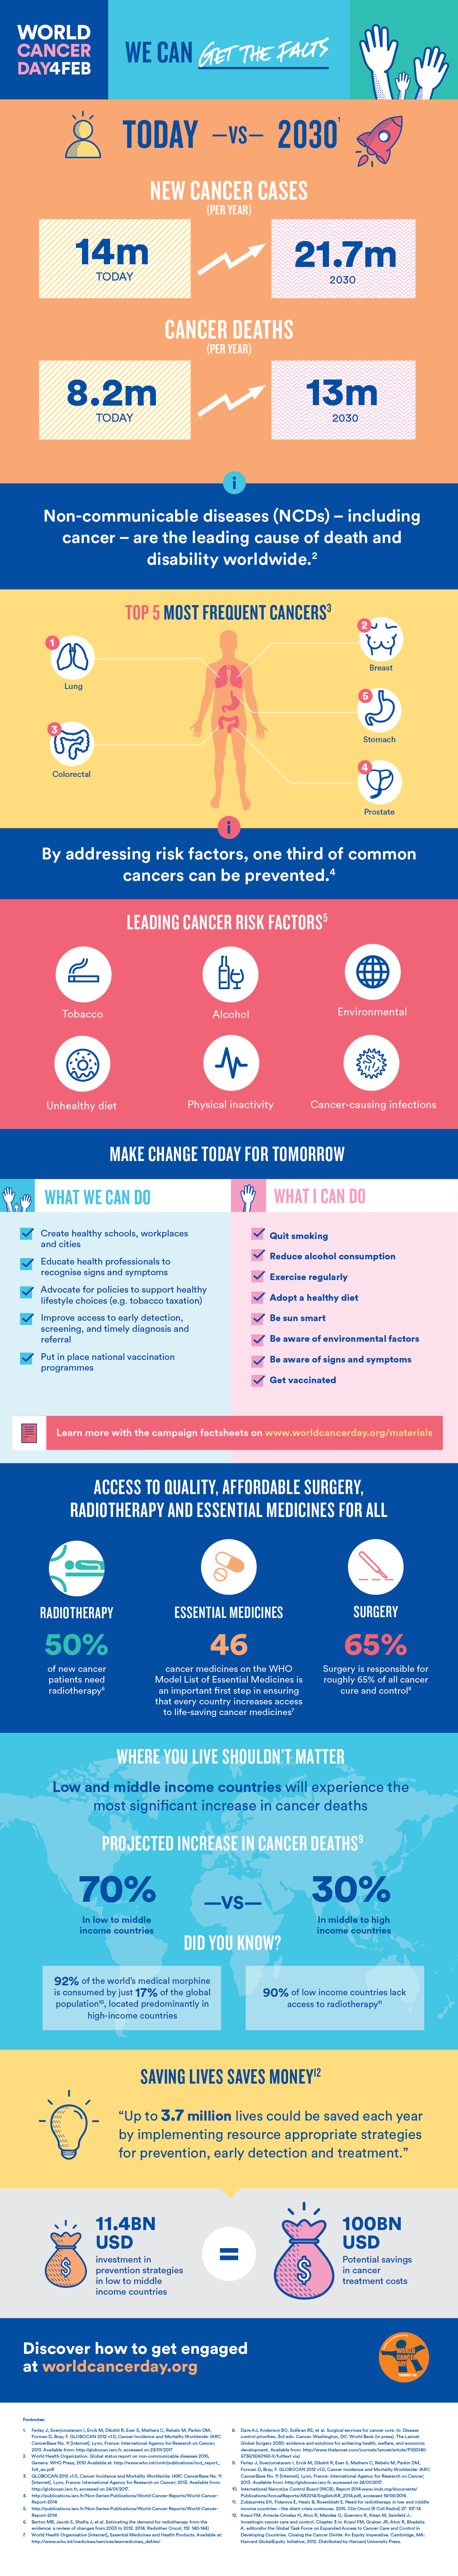 World Cancer Day 2017_Infographic-fact-sheet_FA